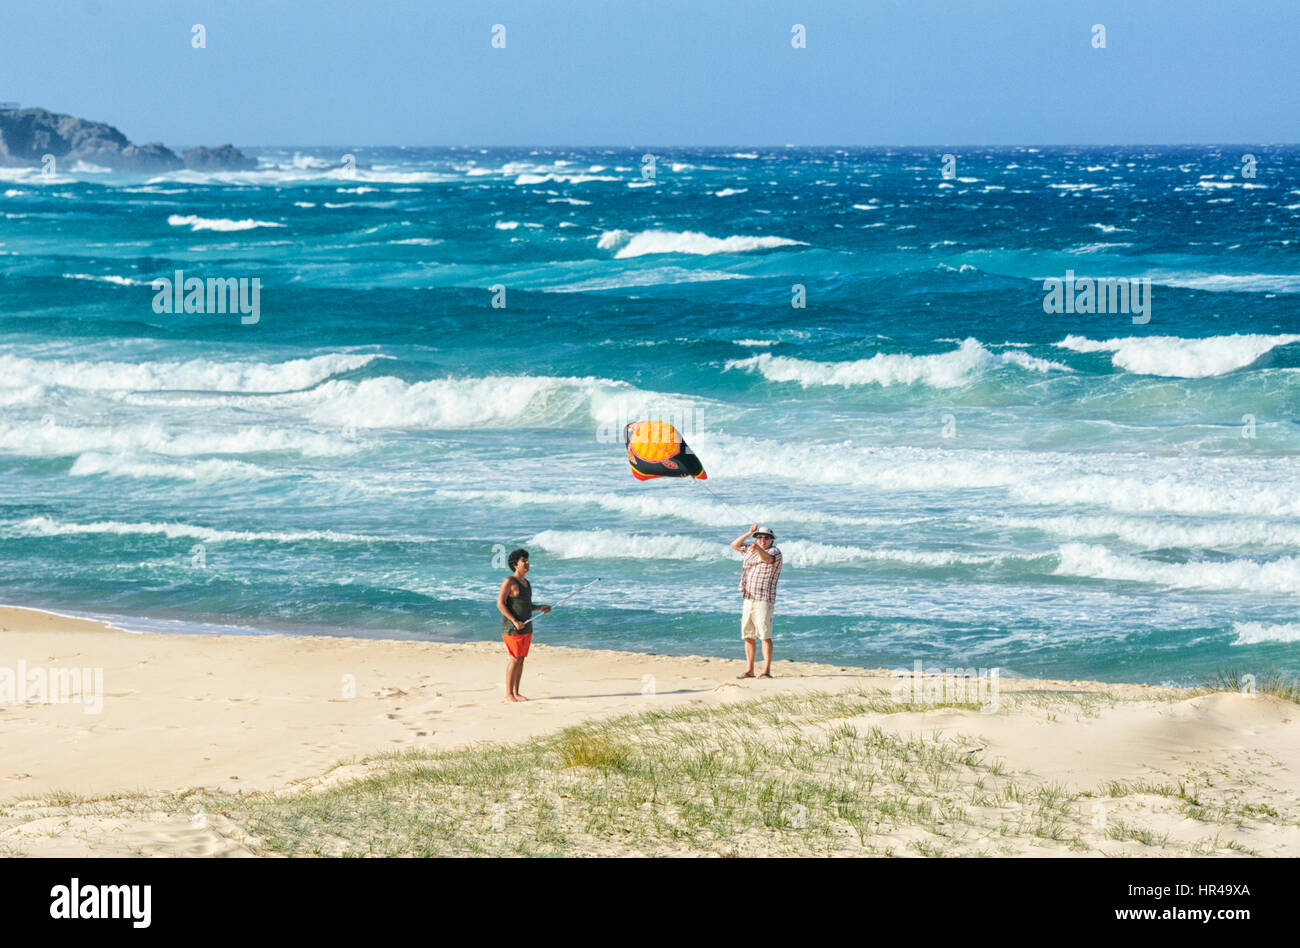 Two persons flying a kite on the beach, Potato Point, New South Wales, Australia - Stock Image